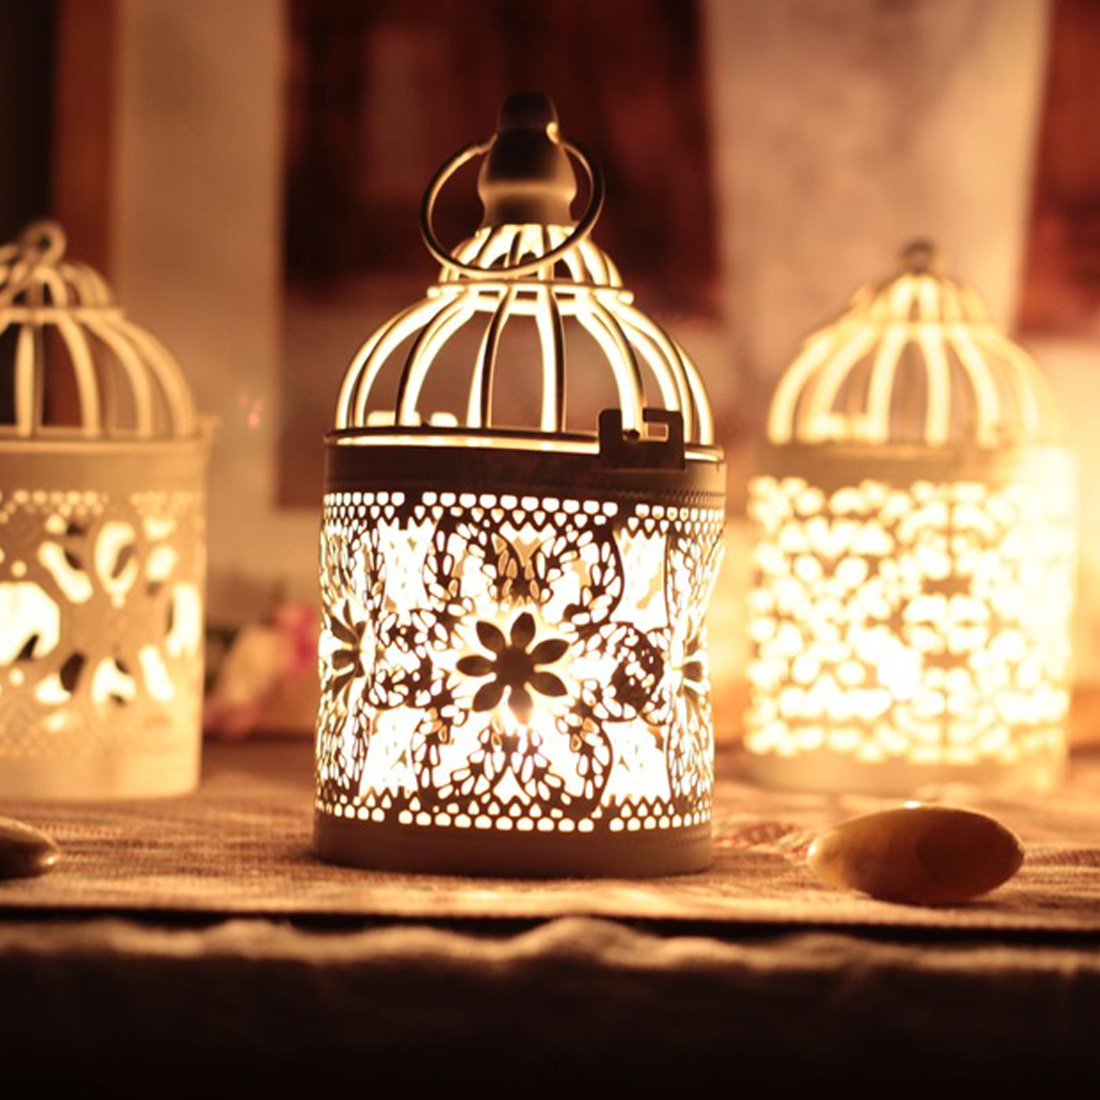 Hollow Candle Holder White Hanging Bird Cage Vintage Candlesticks Wedding Home Decoration Tealight Candlestick Lantern image